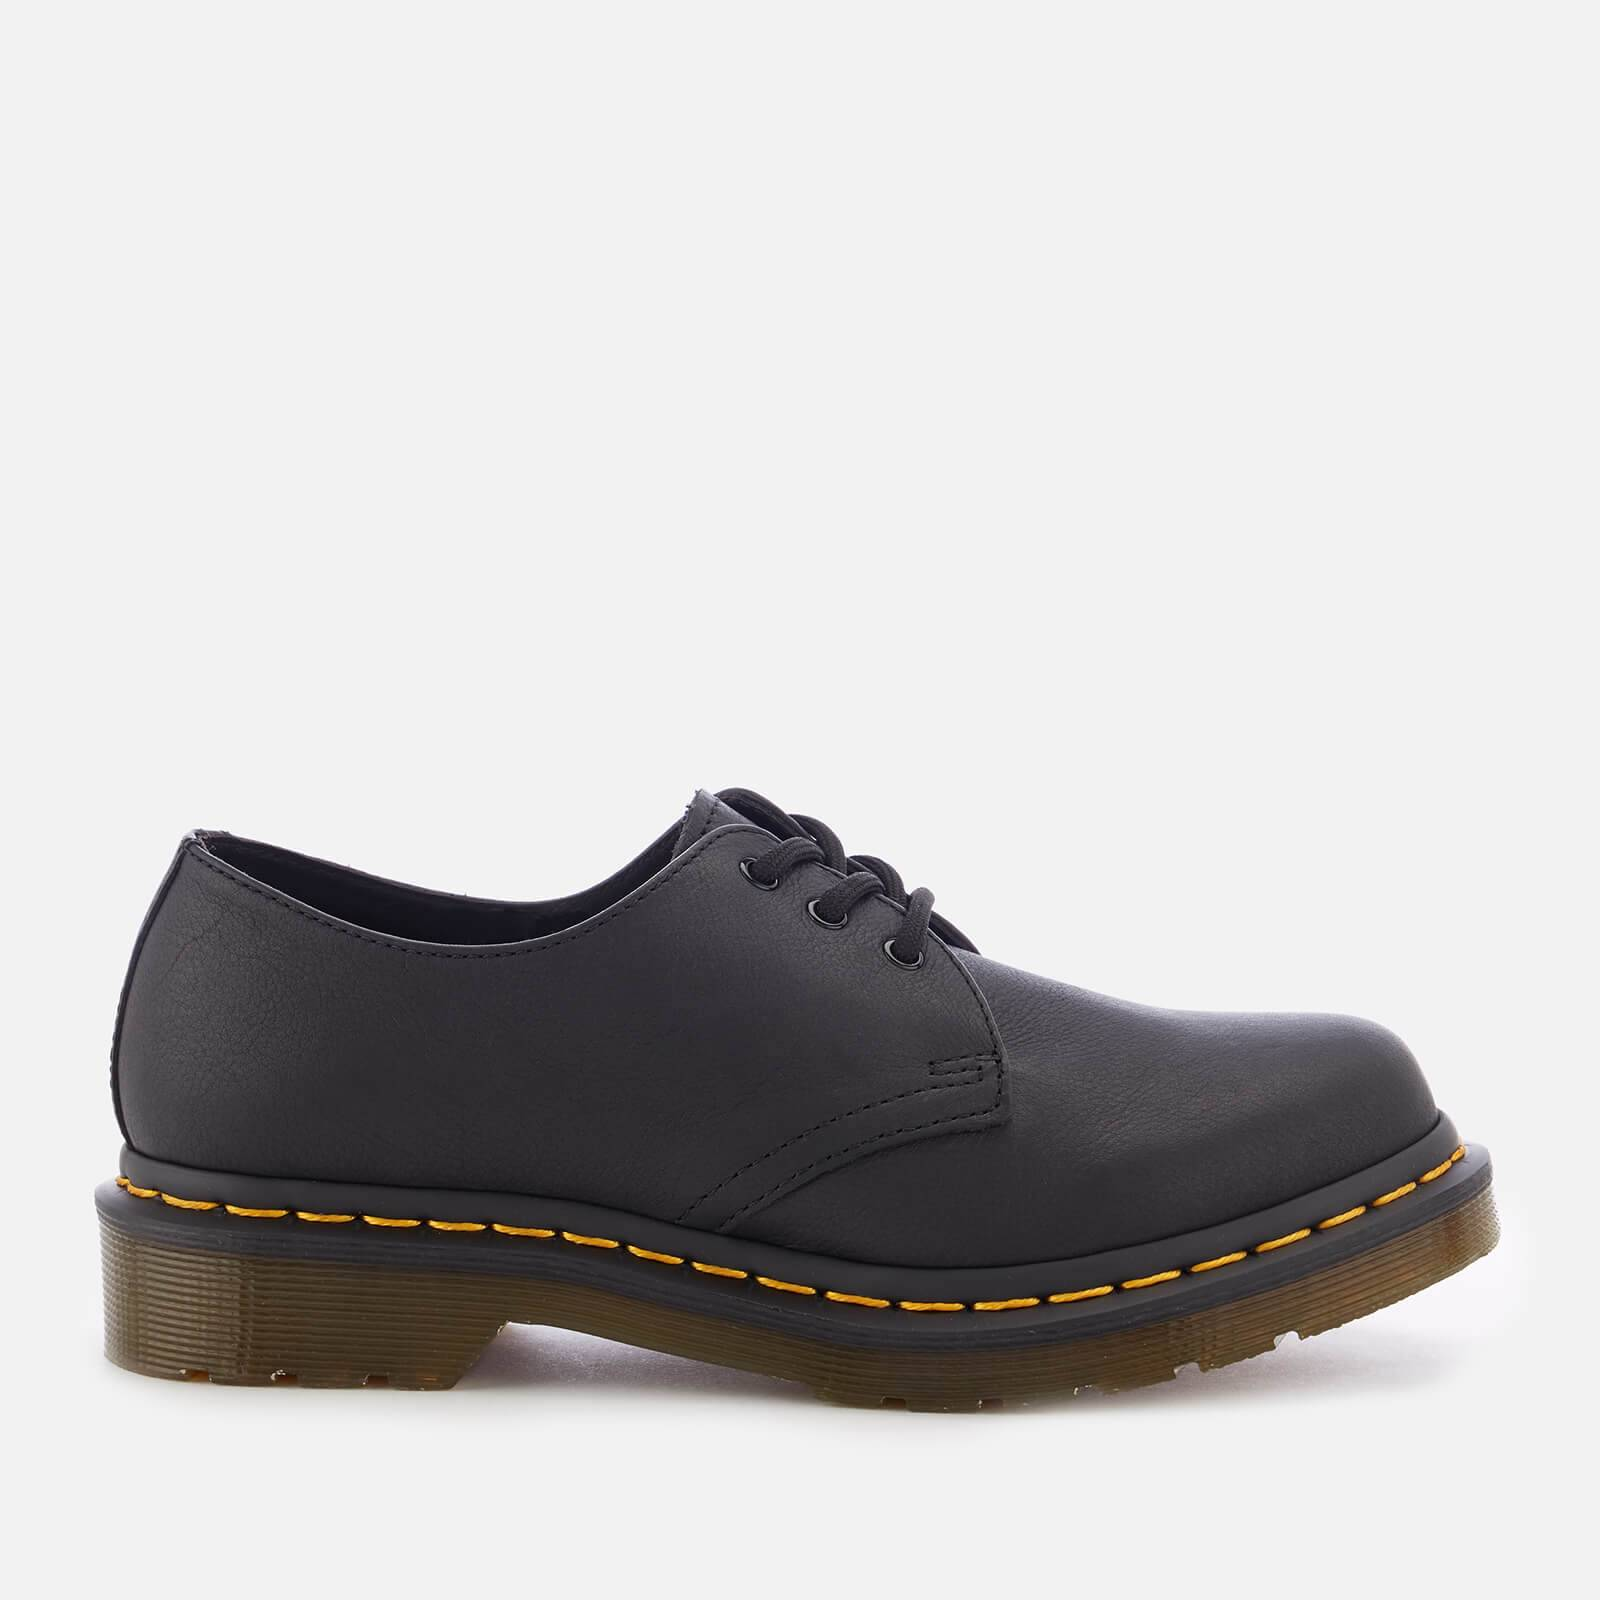 Dr. Martens Women's 1461 W Virginia Leather 3-Eye Shoes - Black - UK 4 - Black